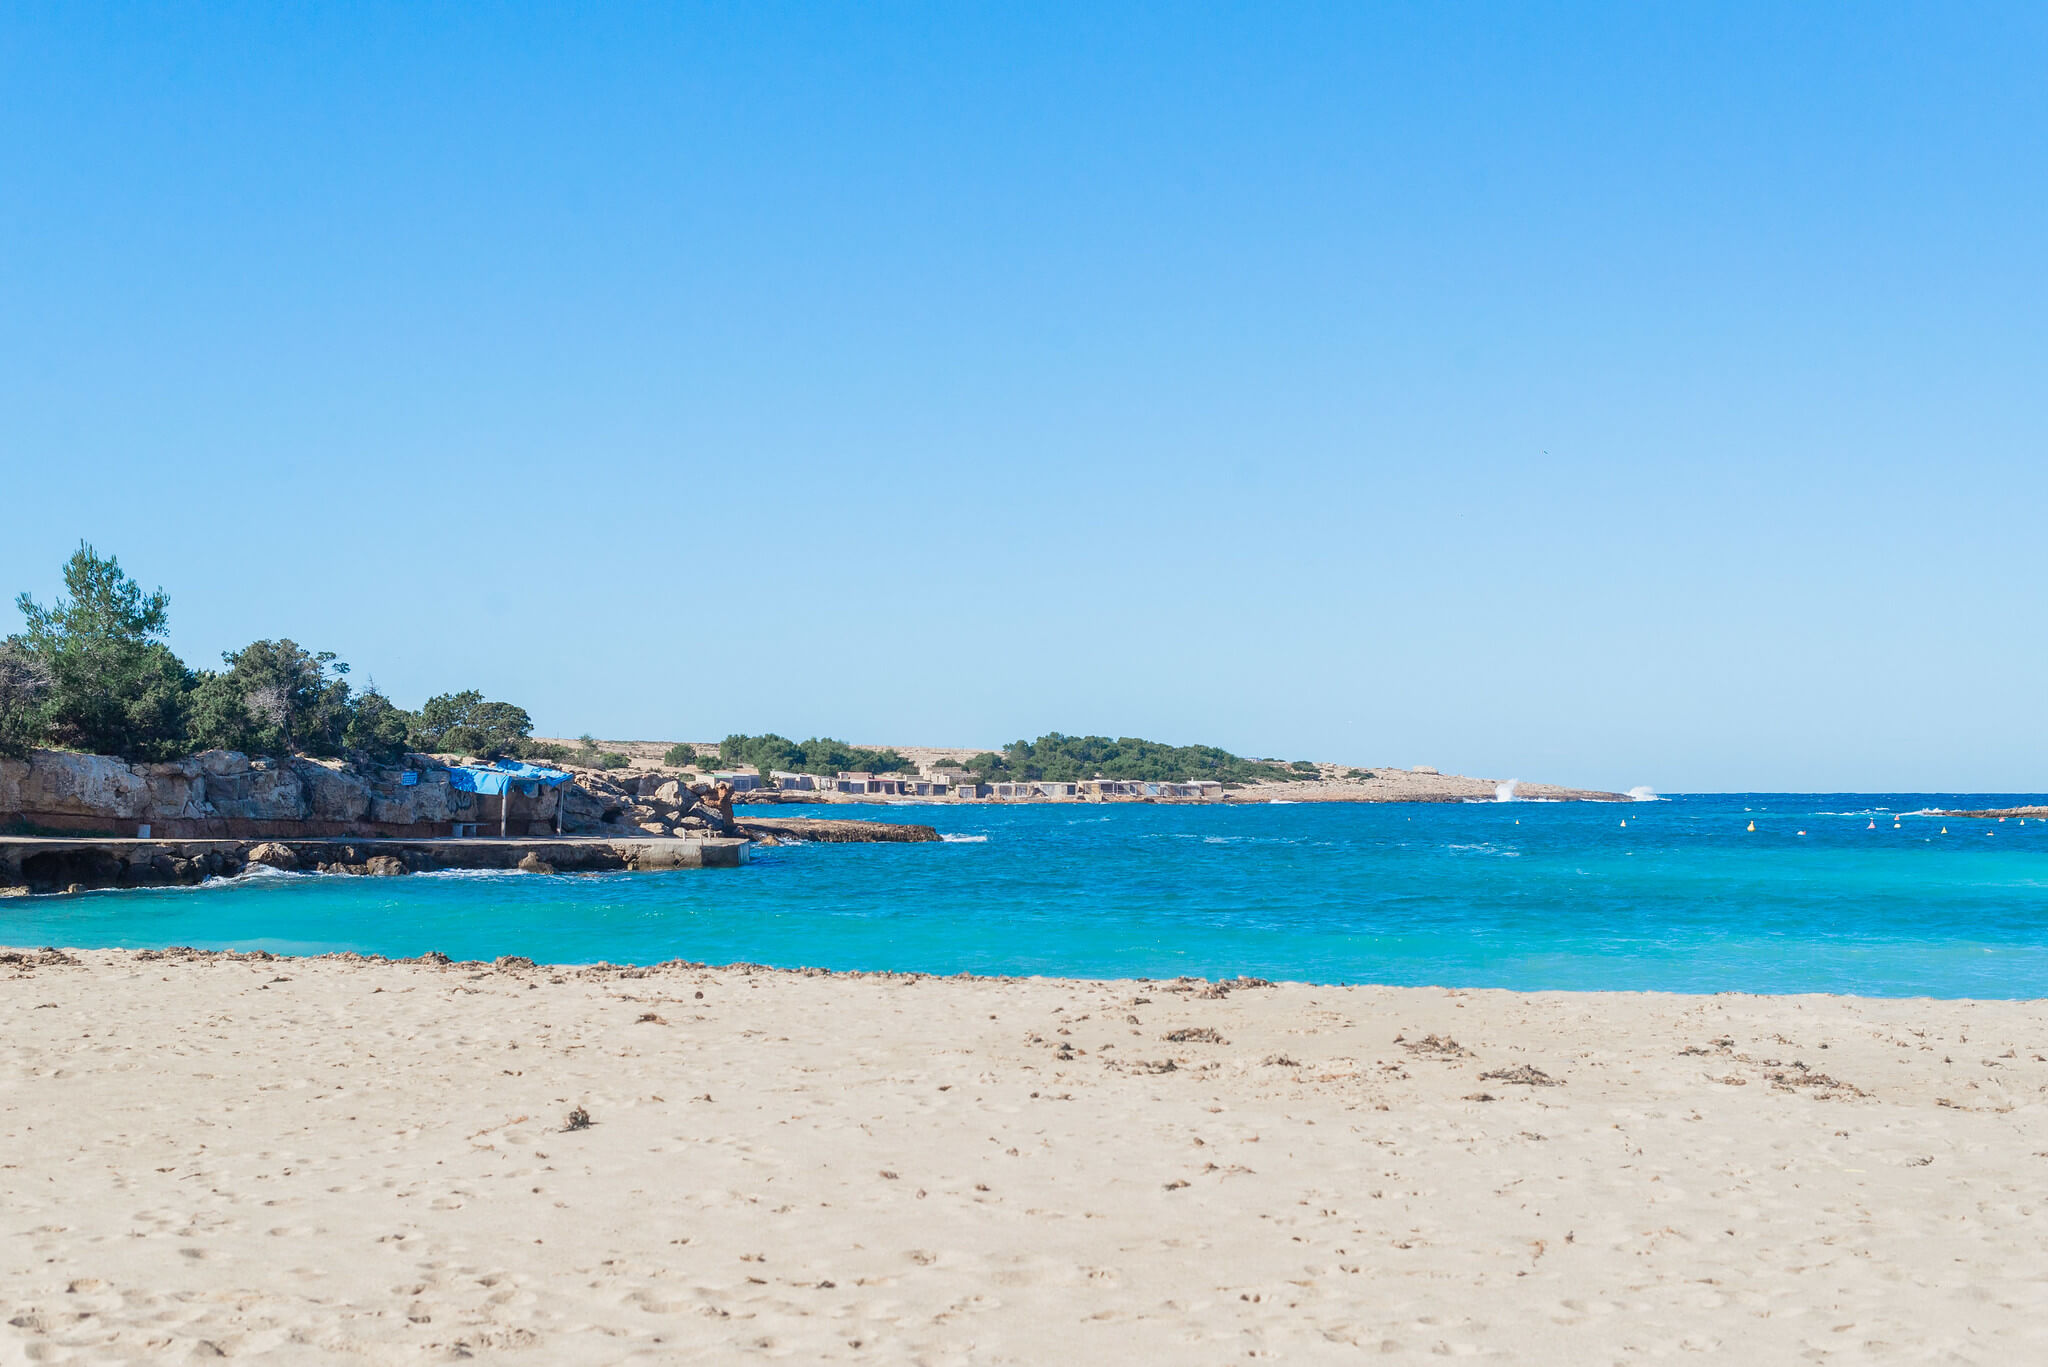 https://www.white-ibiza.com/wp-content/uploads/2020/03/ibiza-beaches-port-des-torrent-06.jpg